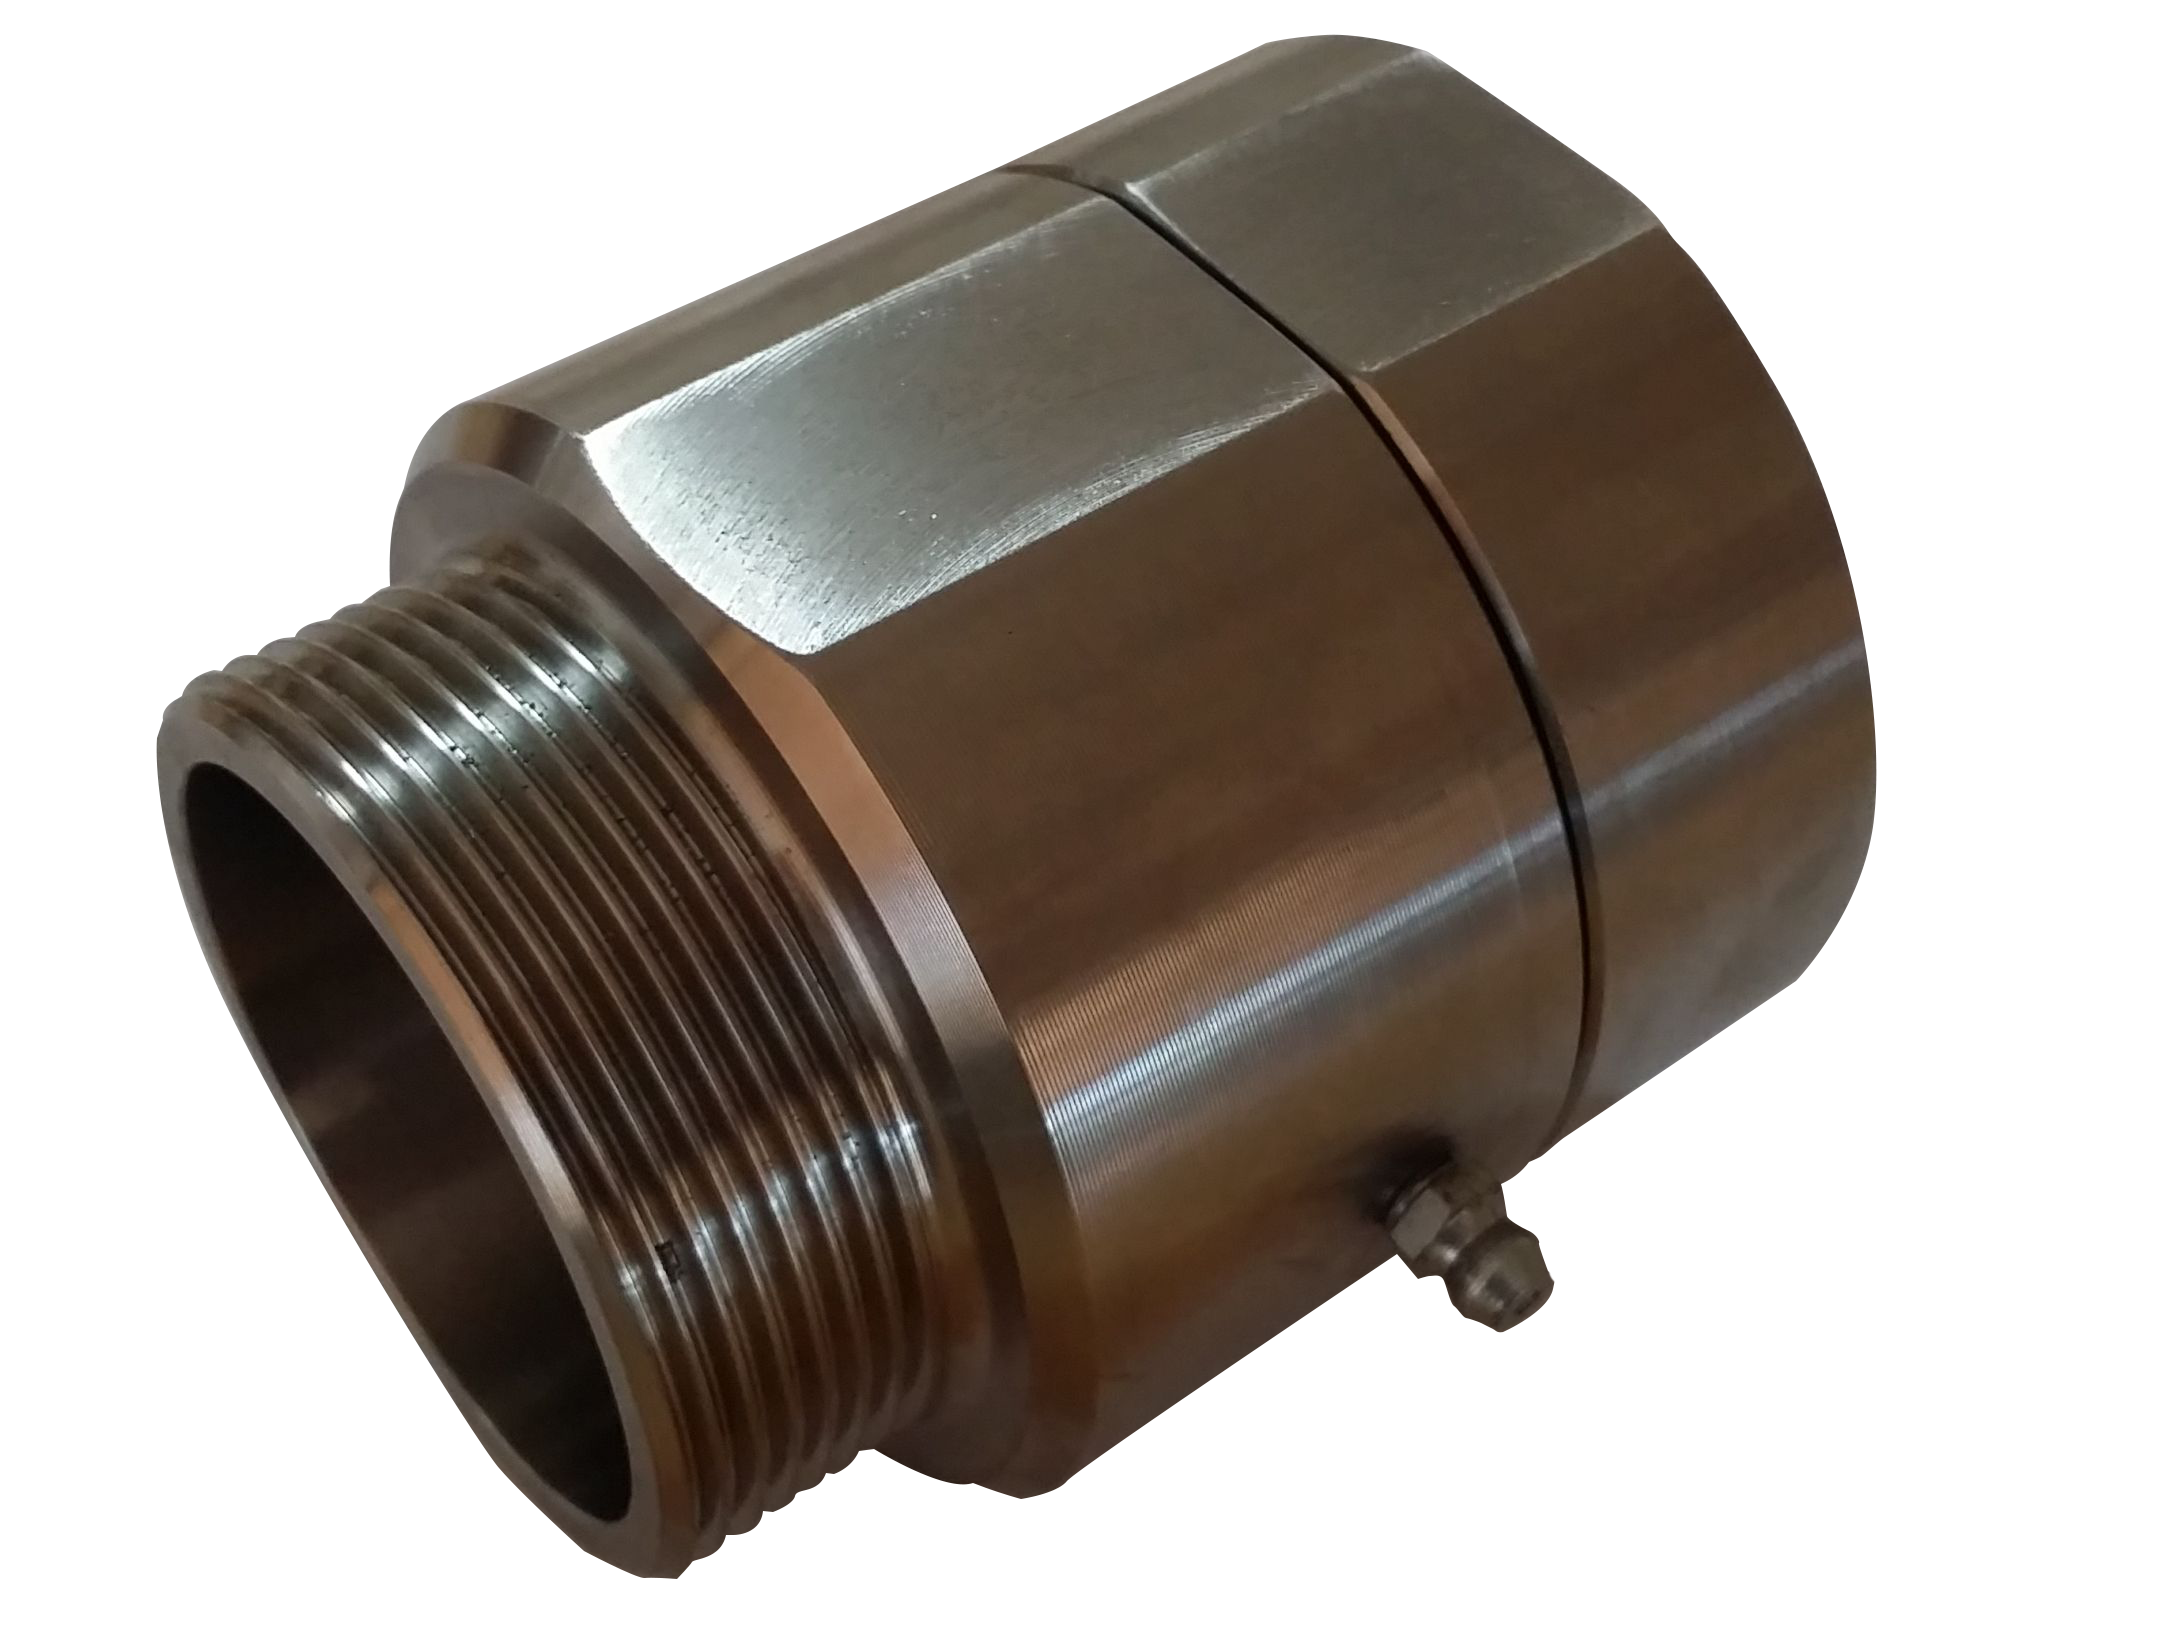 50mm Stainless Steel Swivel with grease nipple